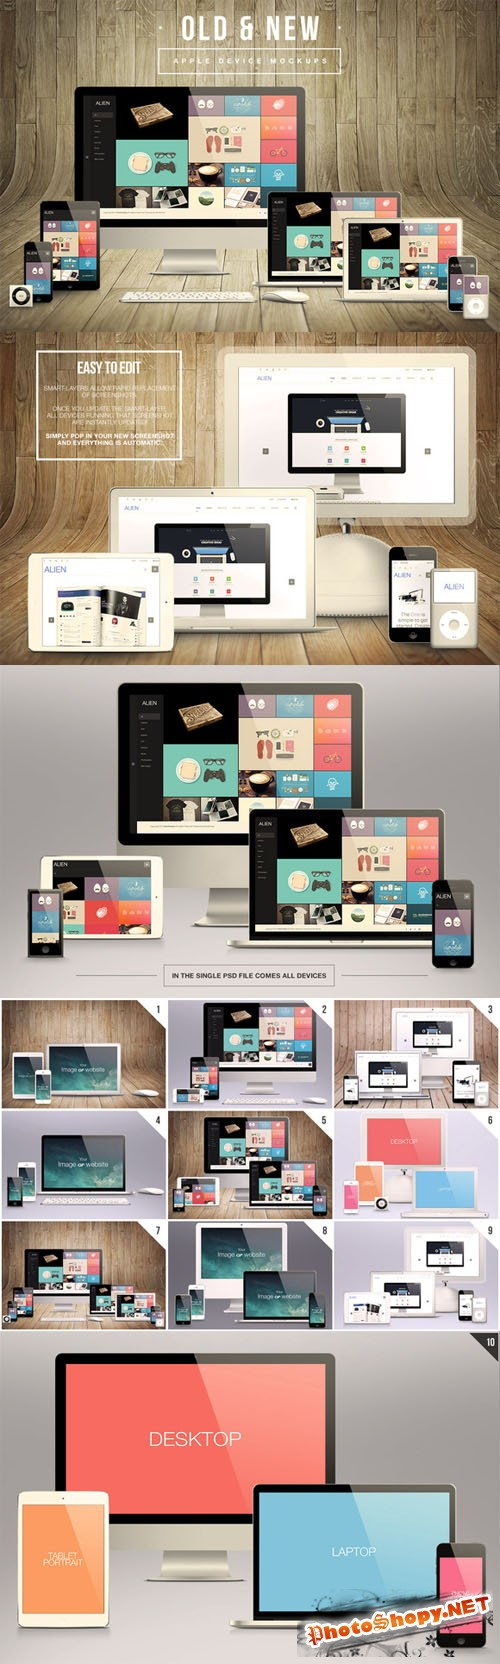 CreativeMarket - Old & New Apple Device Mockups